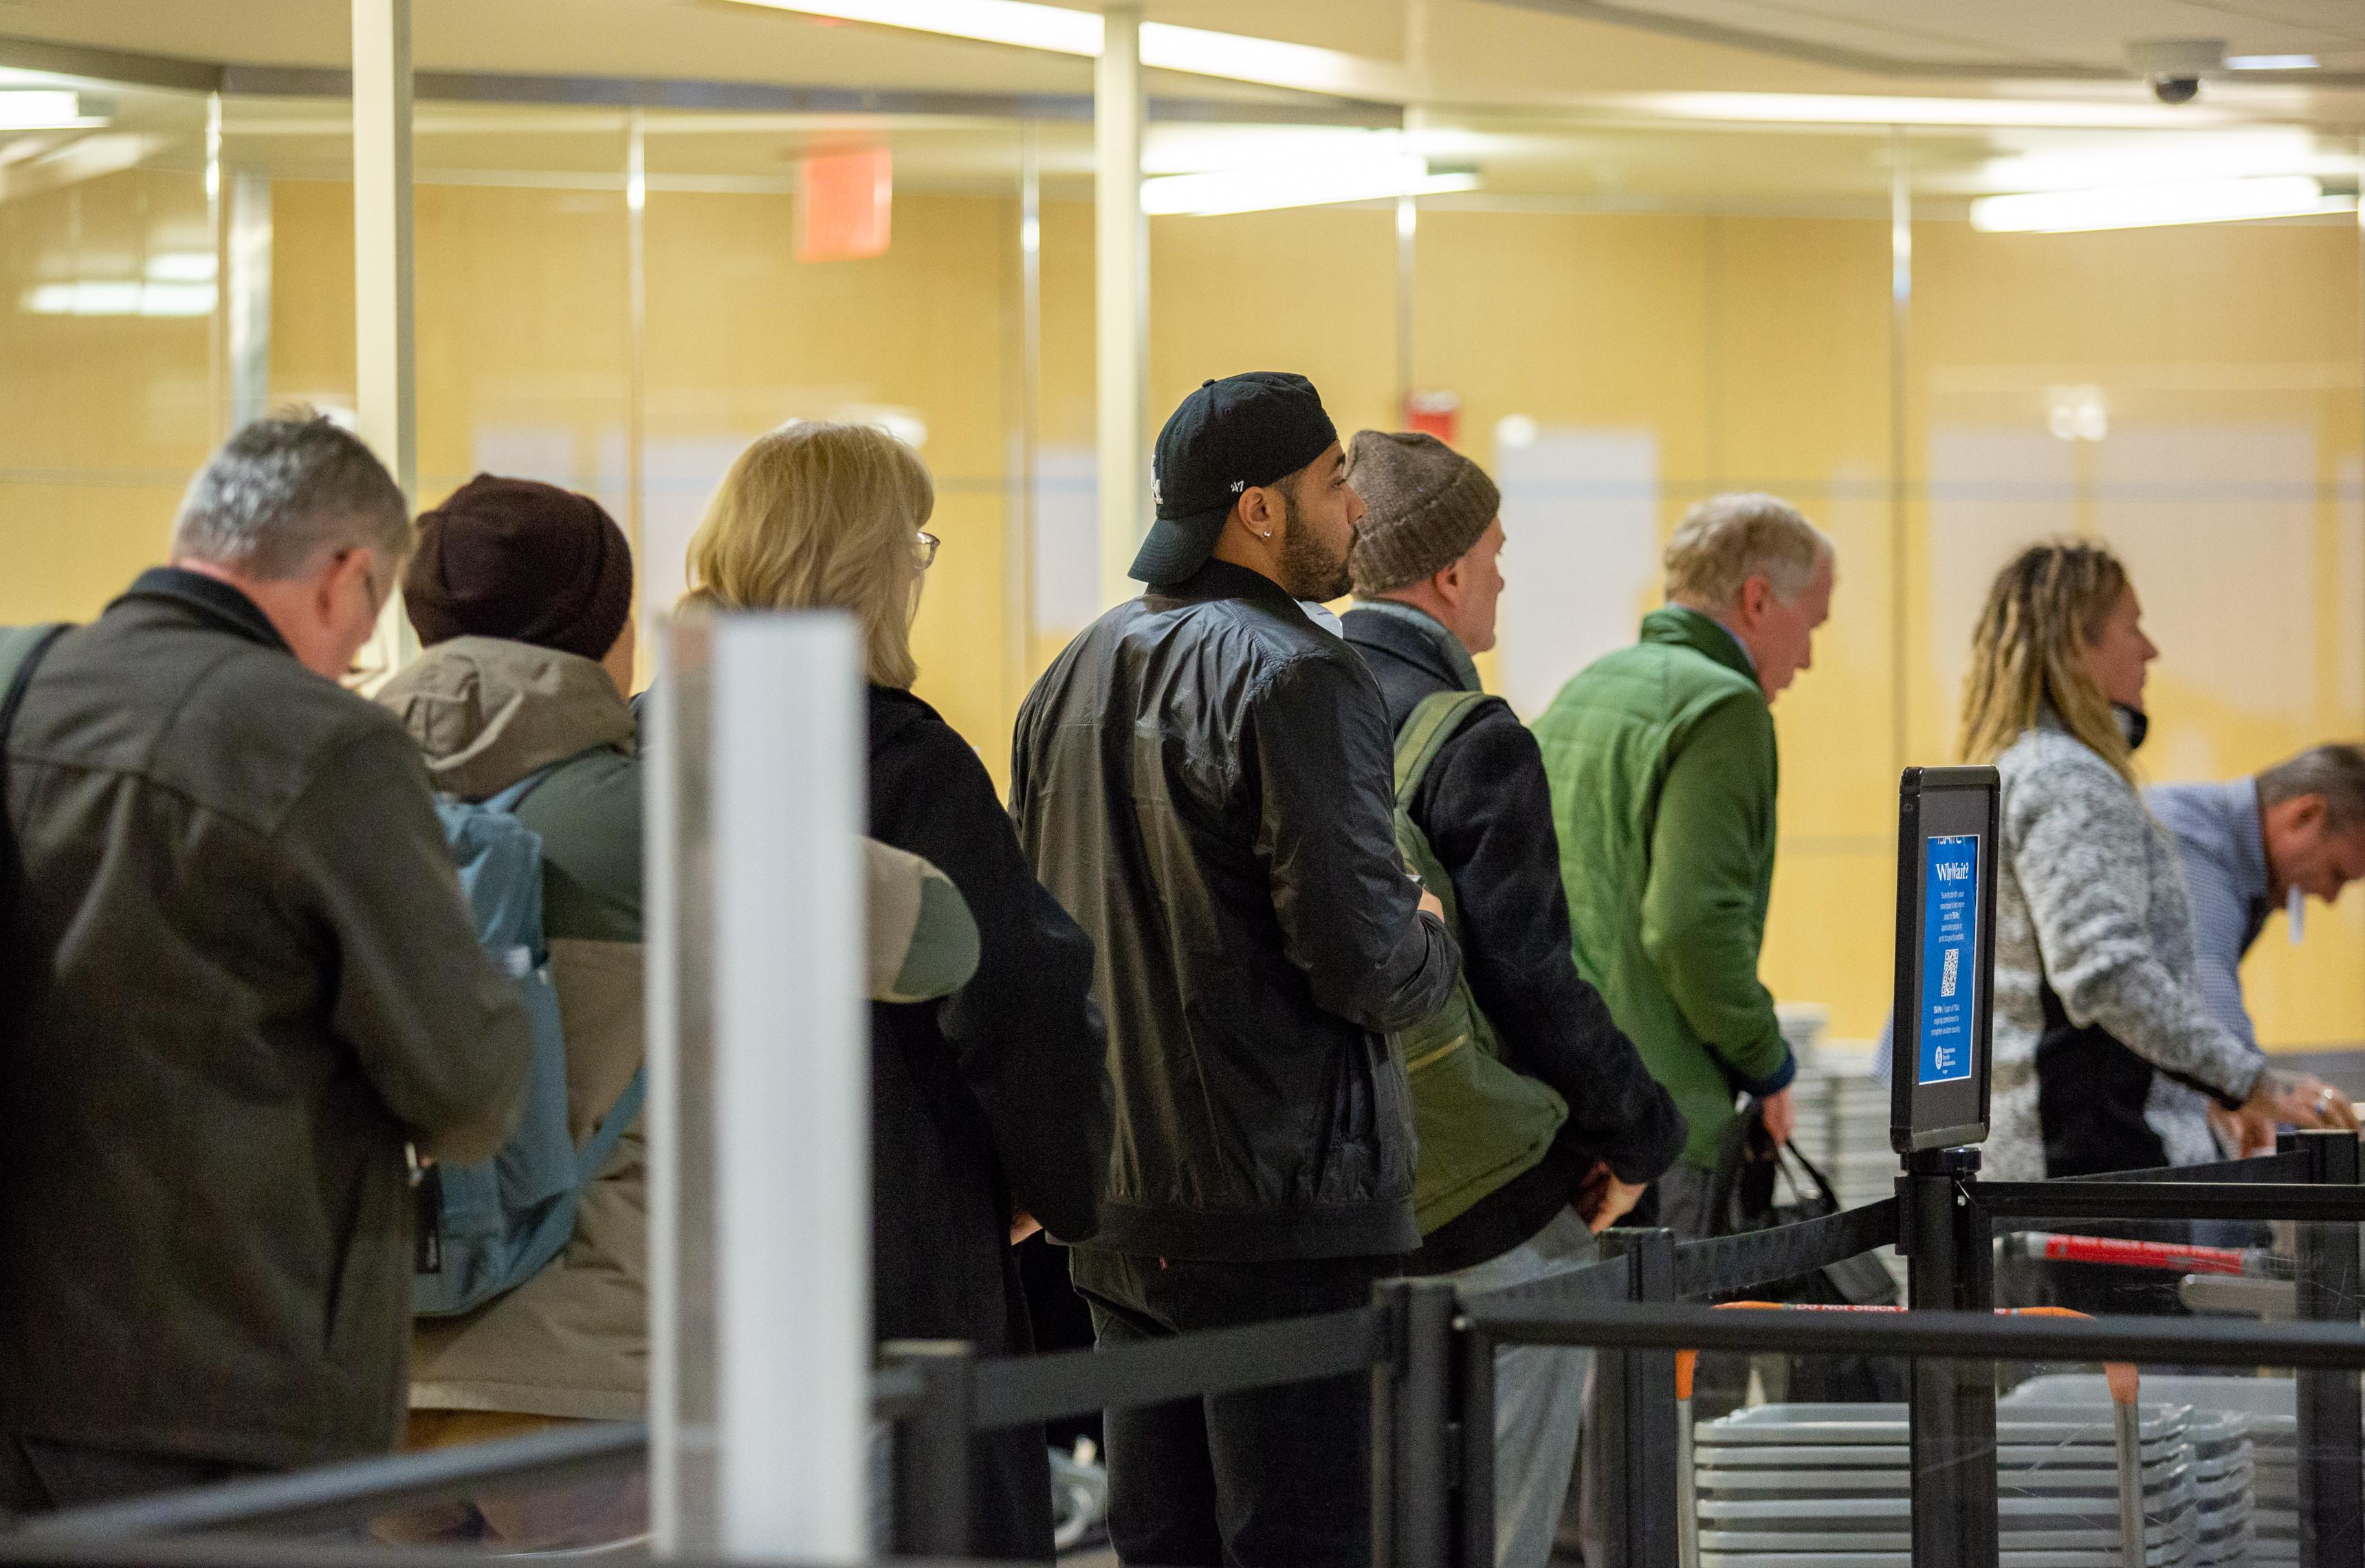 Expect airport-like security at this year's Washington State